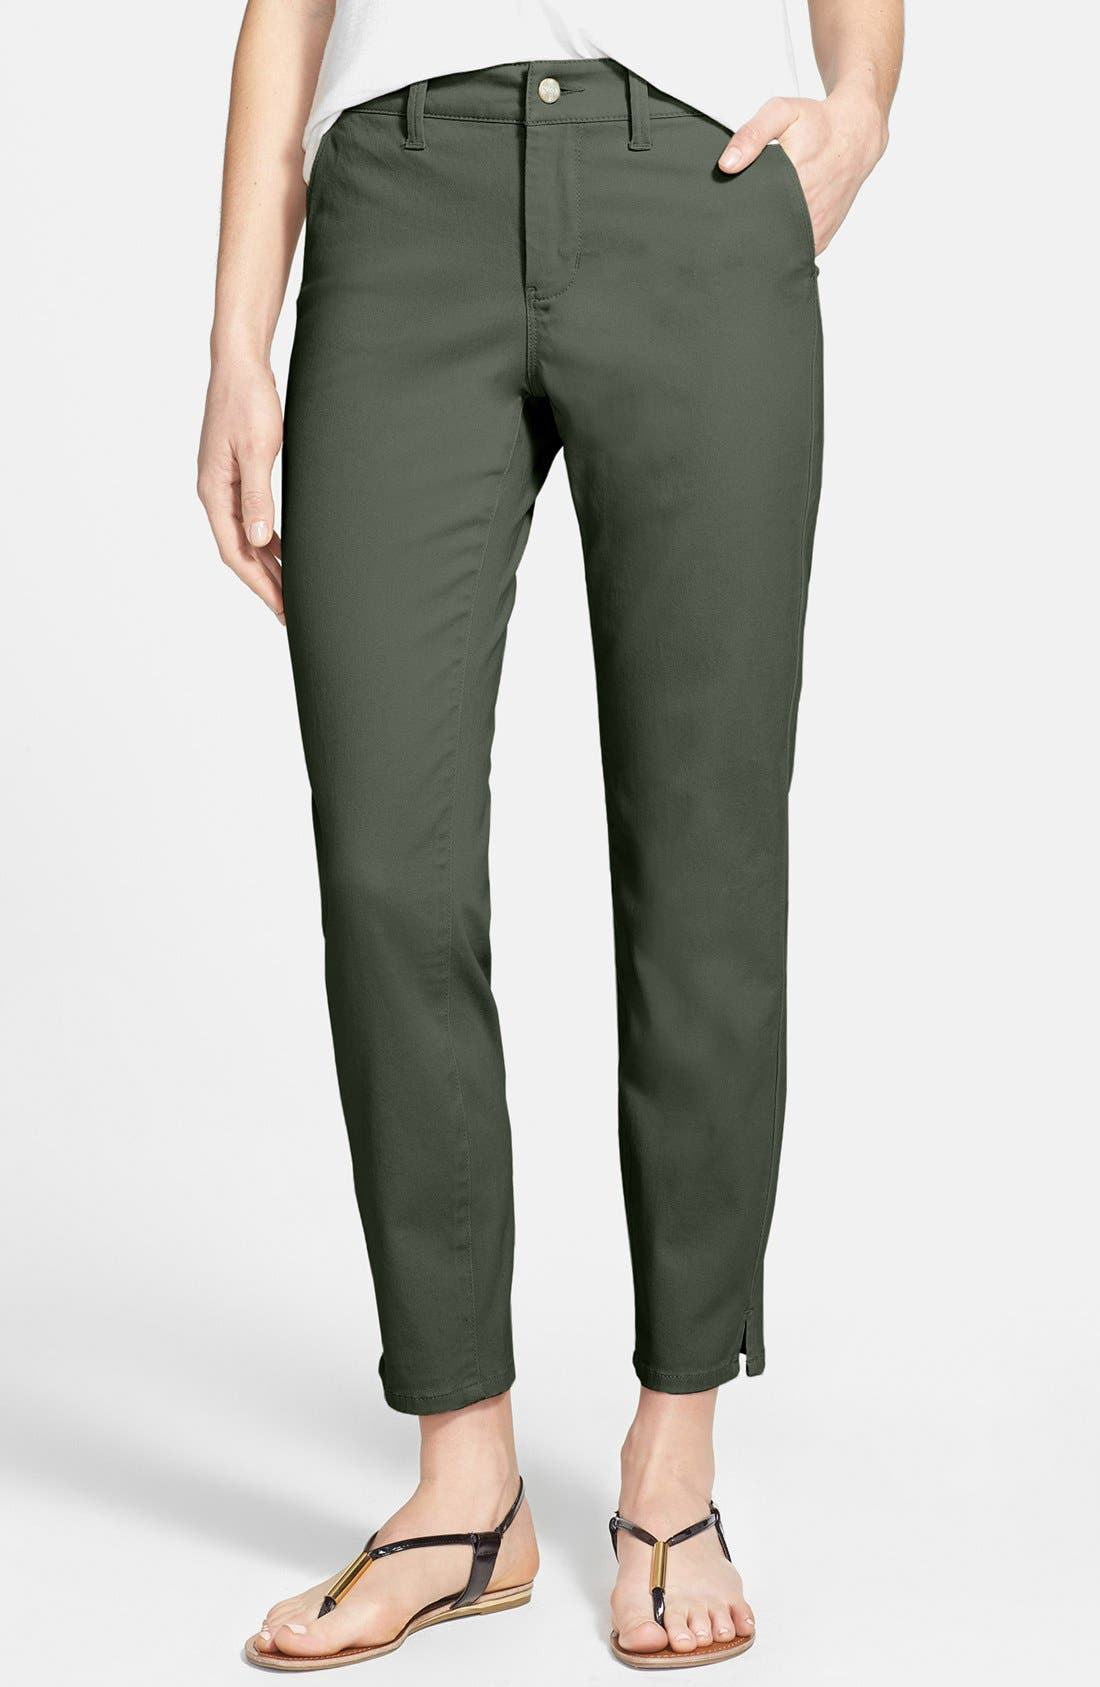 Alternate Image 1 Selected - NYDJ 'Aileen' Colored Stretch Ankle Trouser Jeans (Petite)